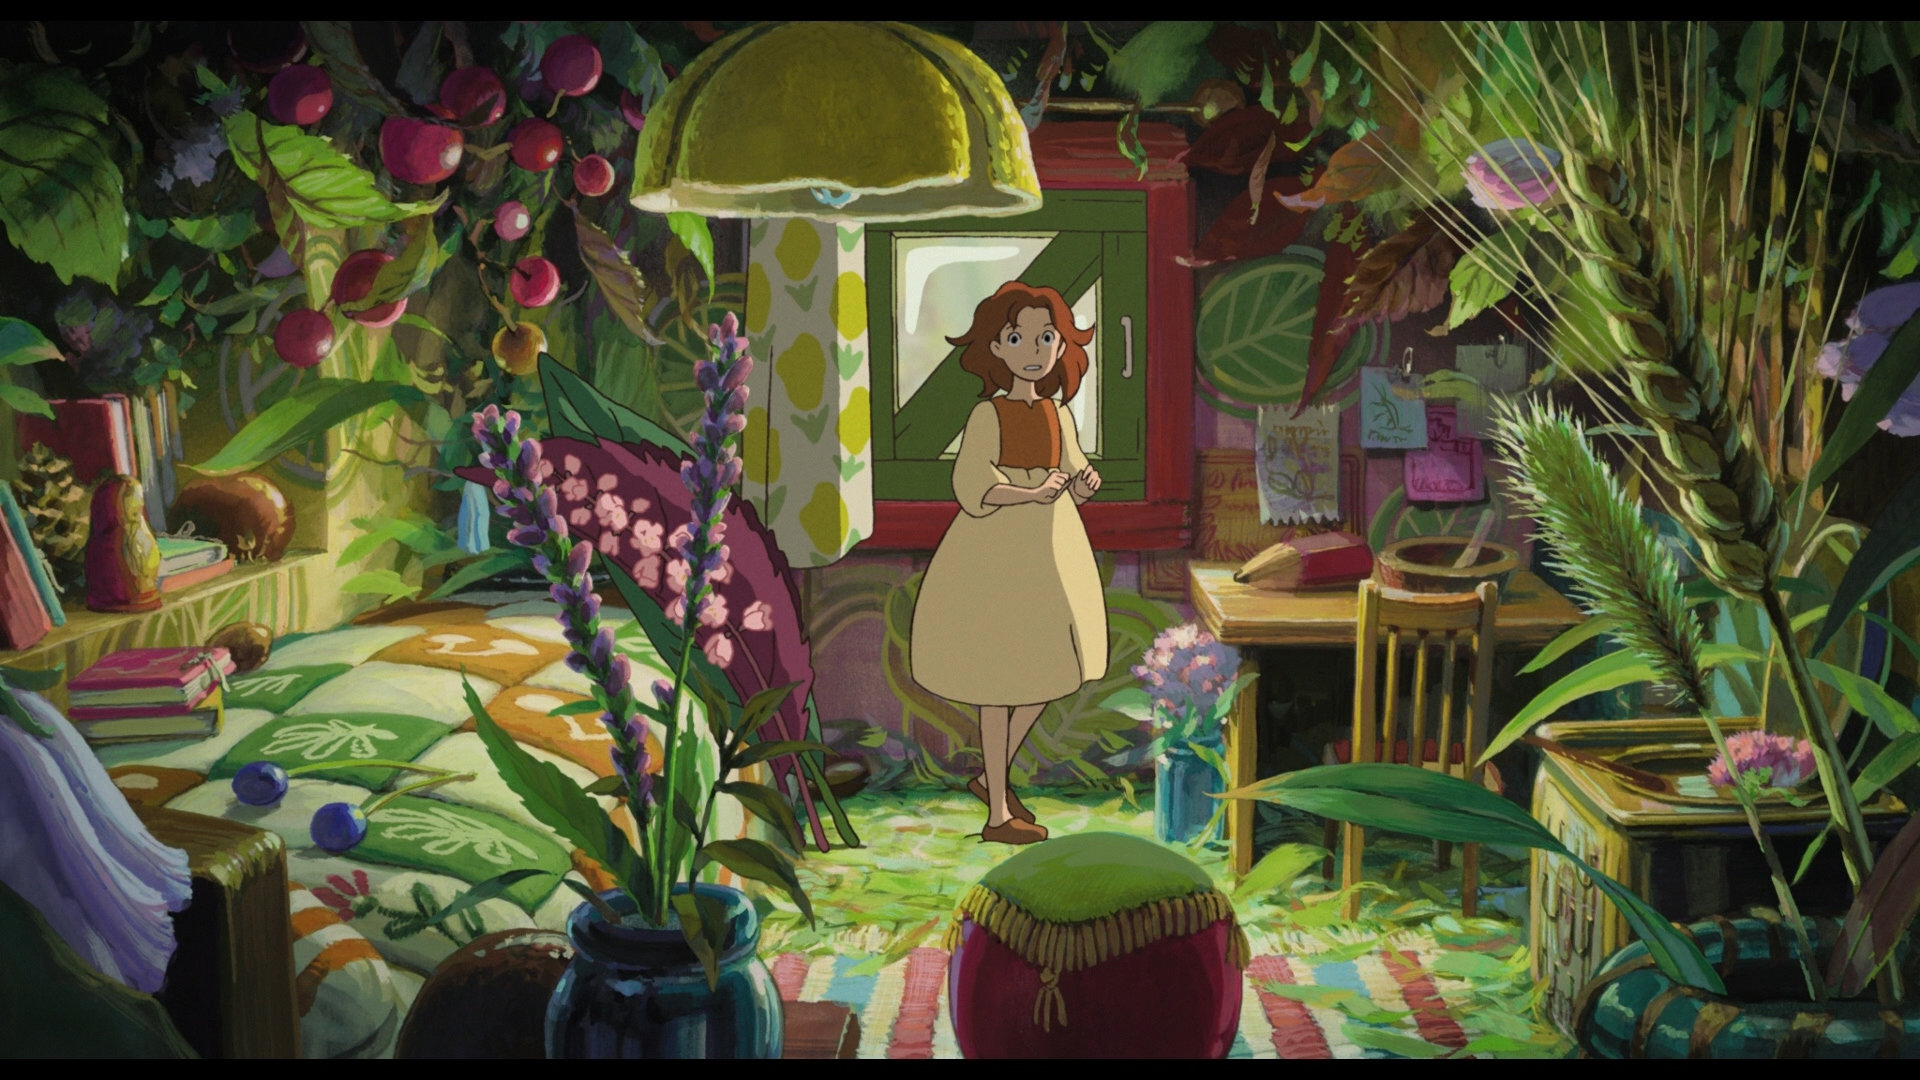 Ps3 Animated Wallpaper 70 The Secret World Of Arrietty Hd Wallpapers Background